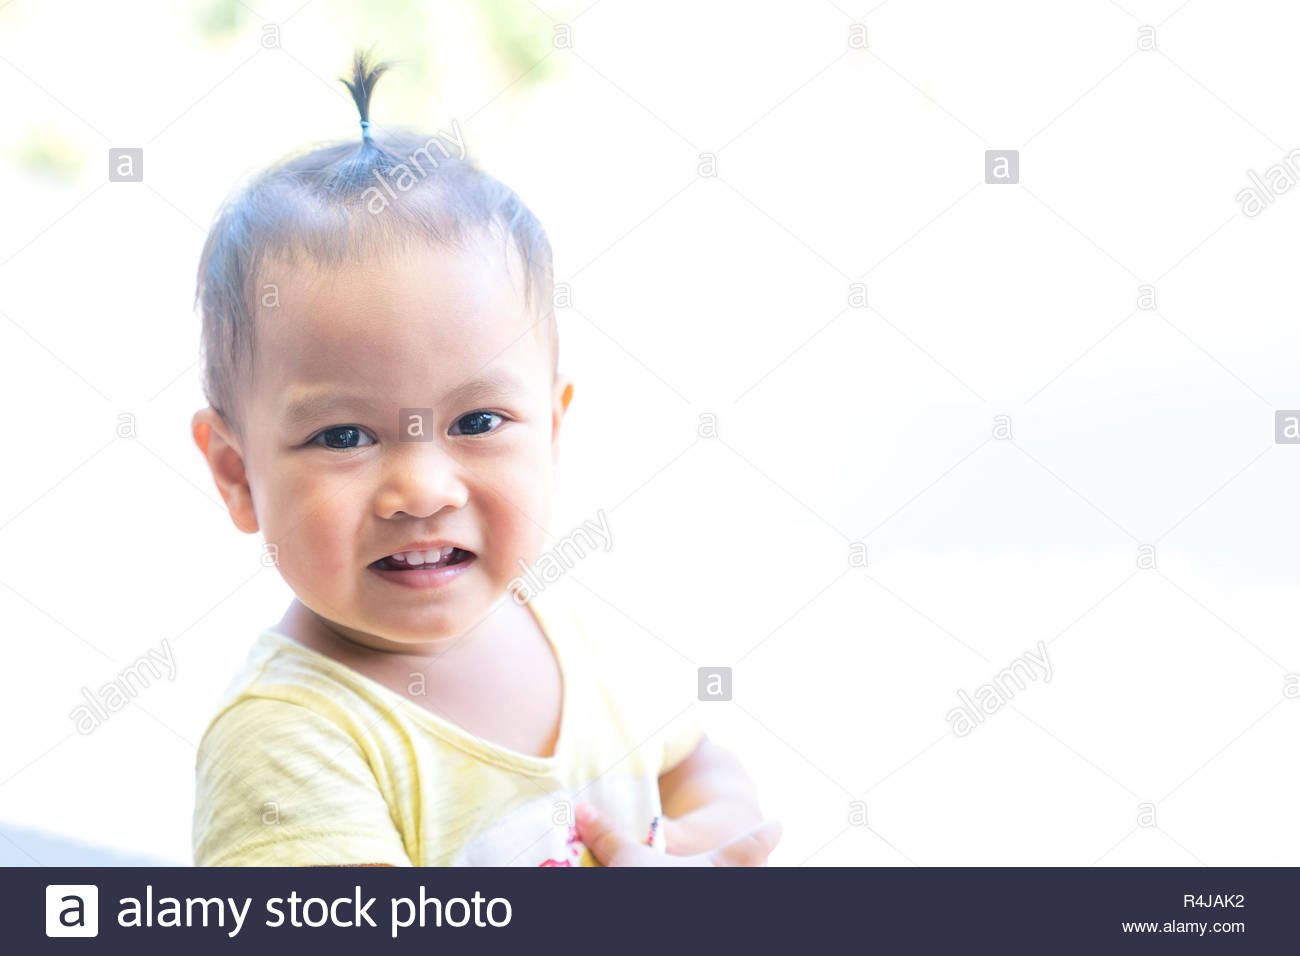 Asia baby smile and first milk tooth Stock Photo